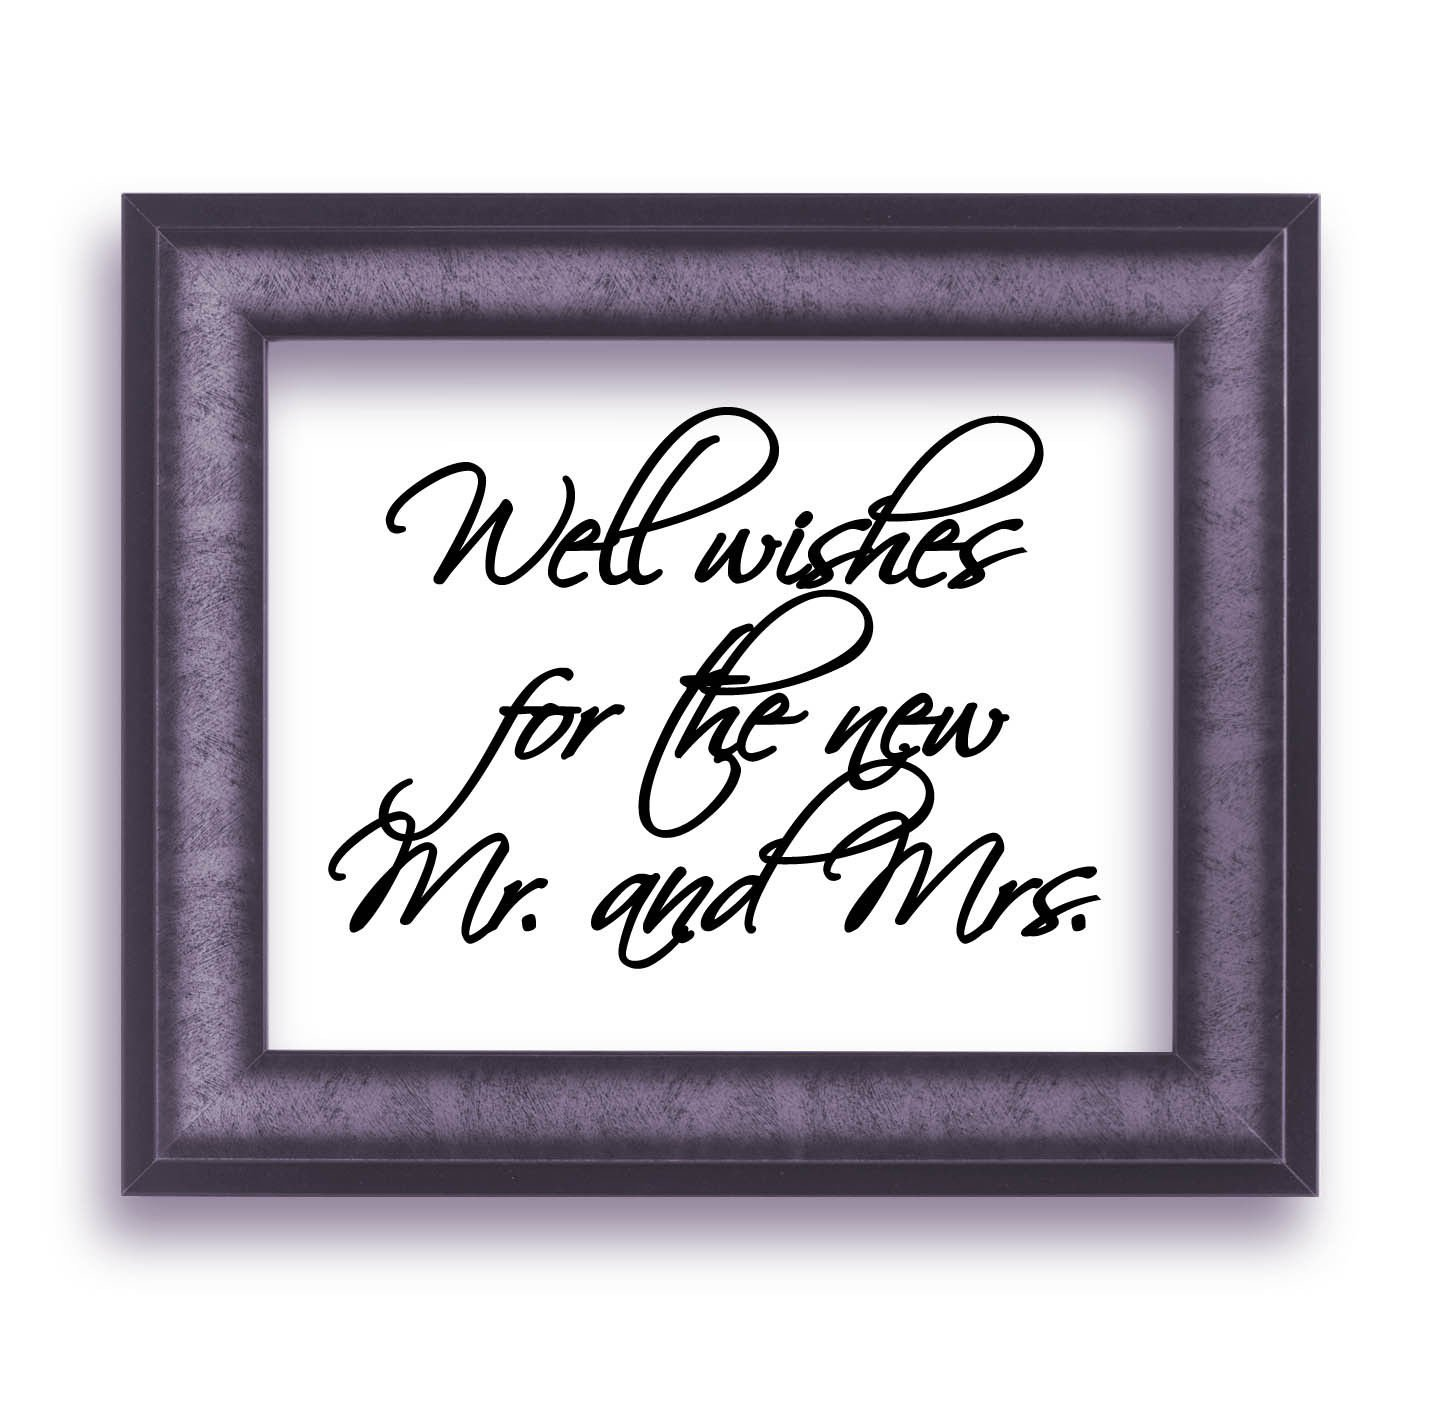 """Well wishes for the new Mr. and Mrs.Script Wedding Vinyl Sticker Decal 6""""h x 8""""w"""